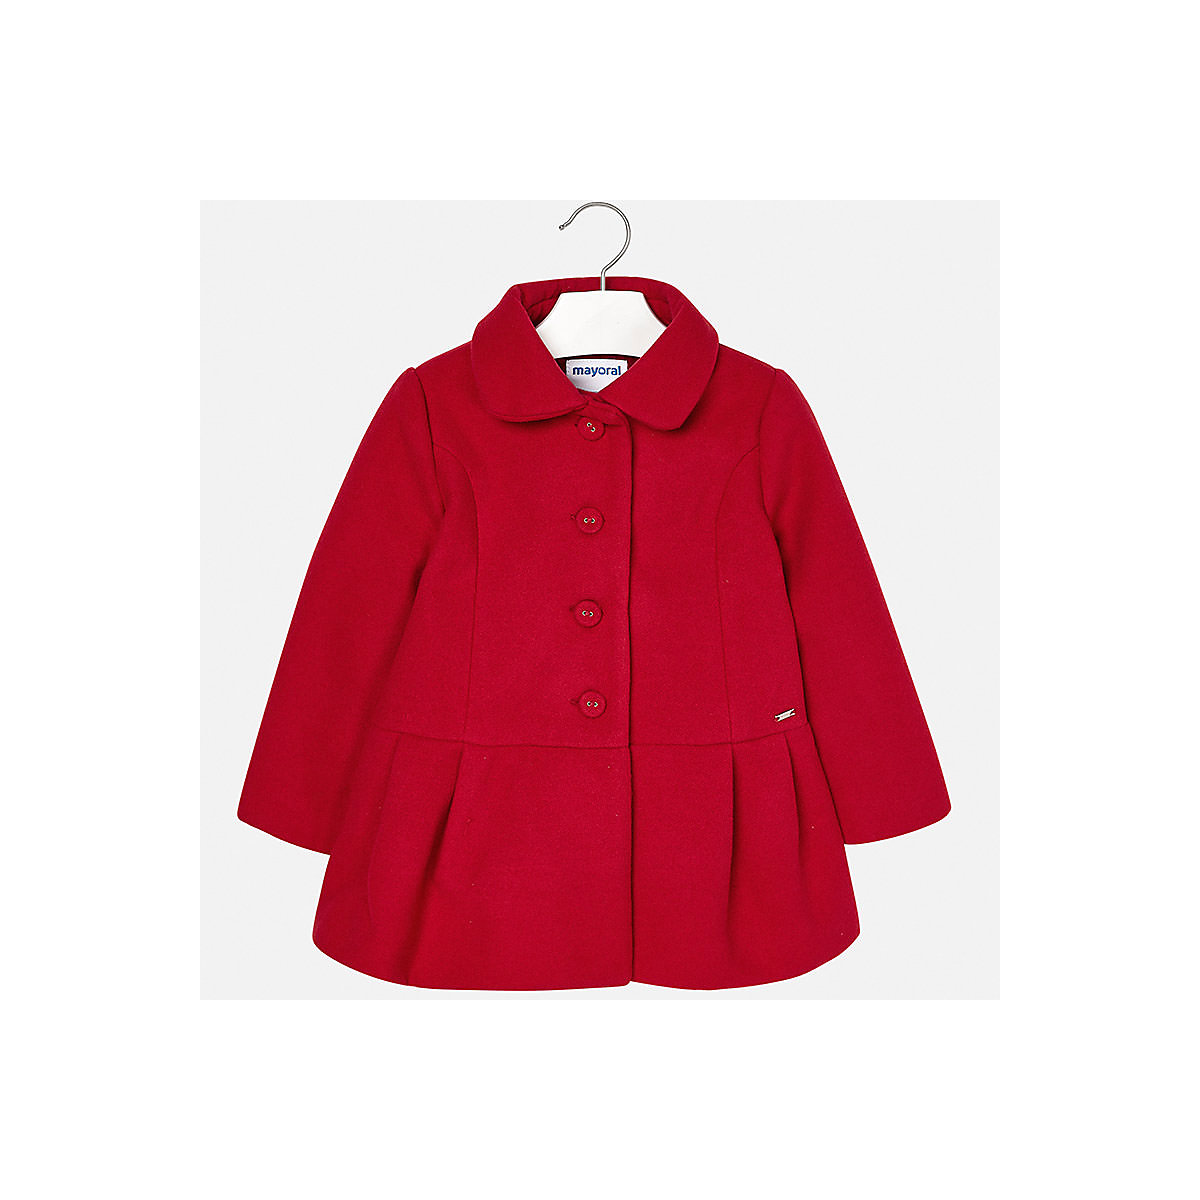 MAYORAL Jackets & Coats 8849029 jacket for girl boy coat baby clothes children clothing outwear boys girls